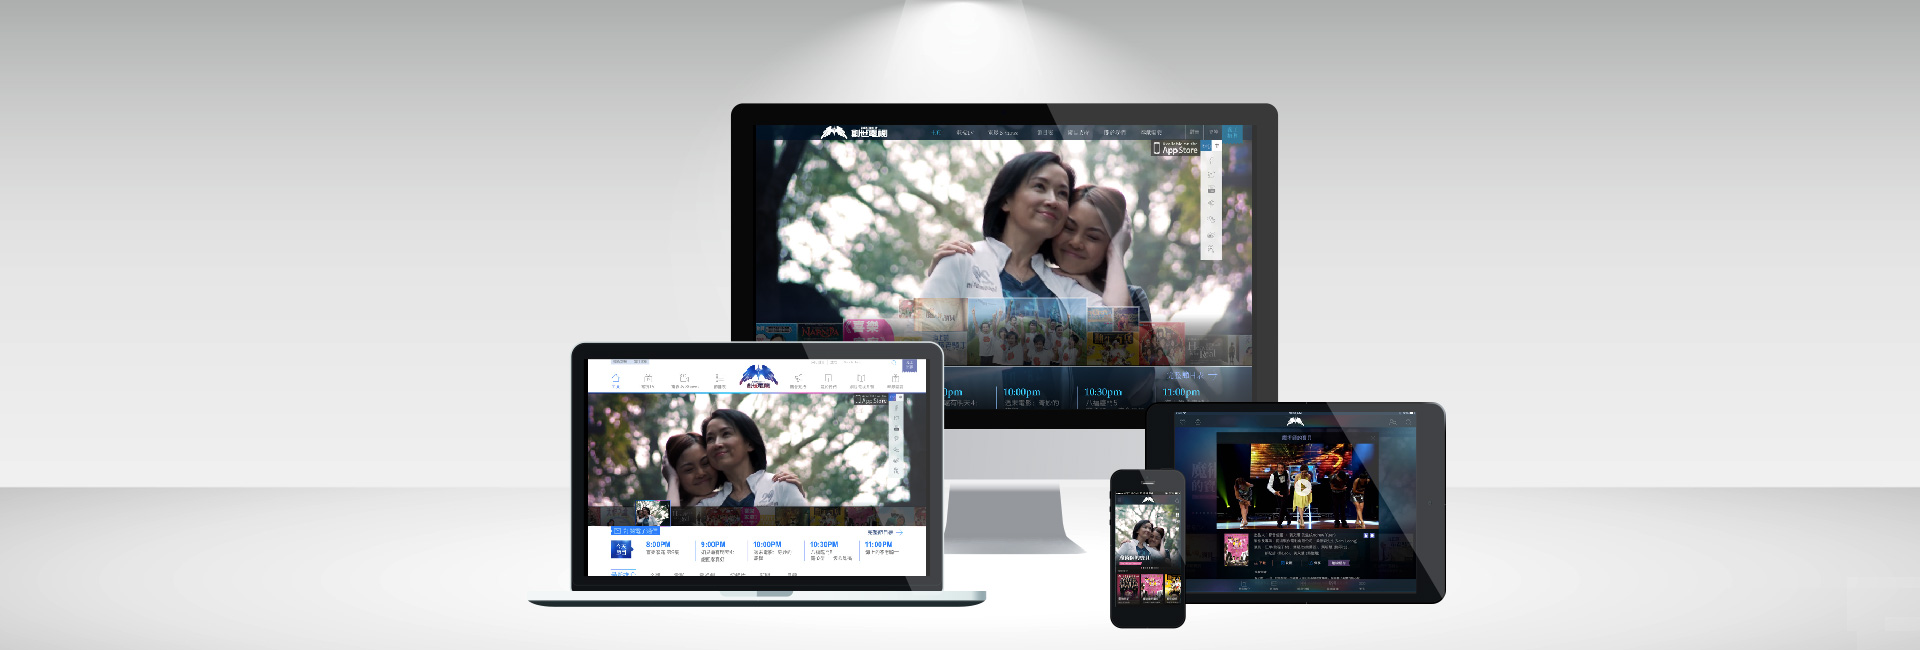 Web and App – Christian Media Org. & TV Channel